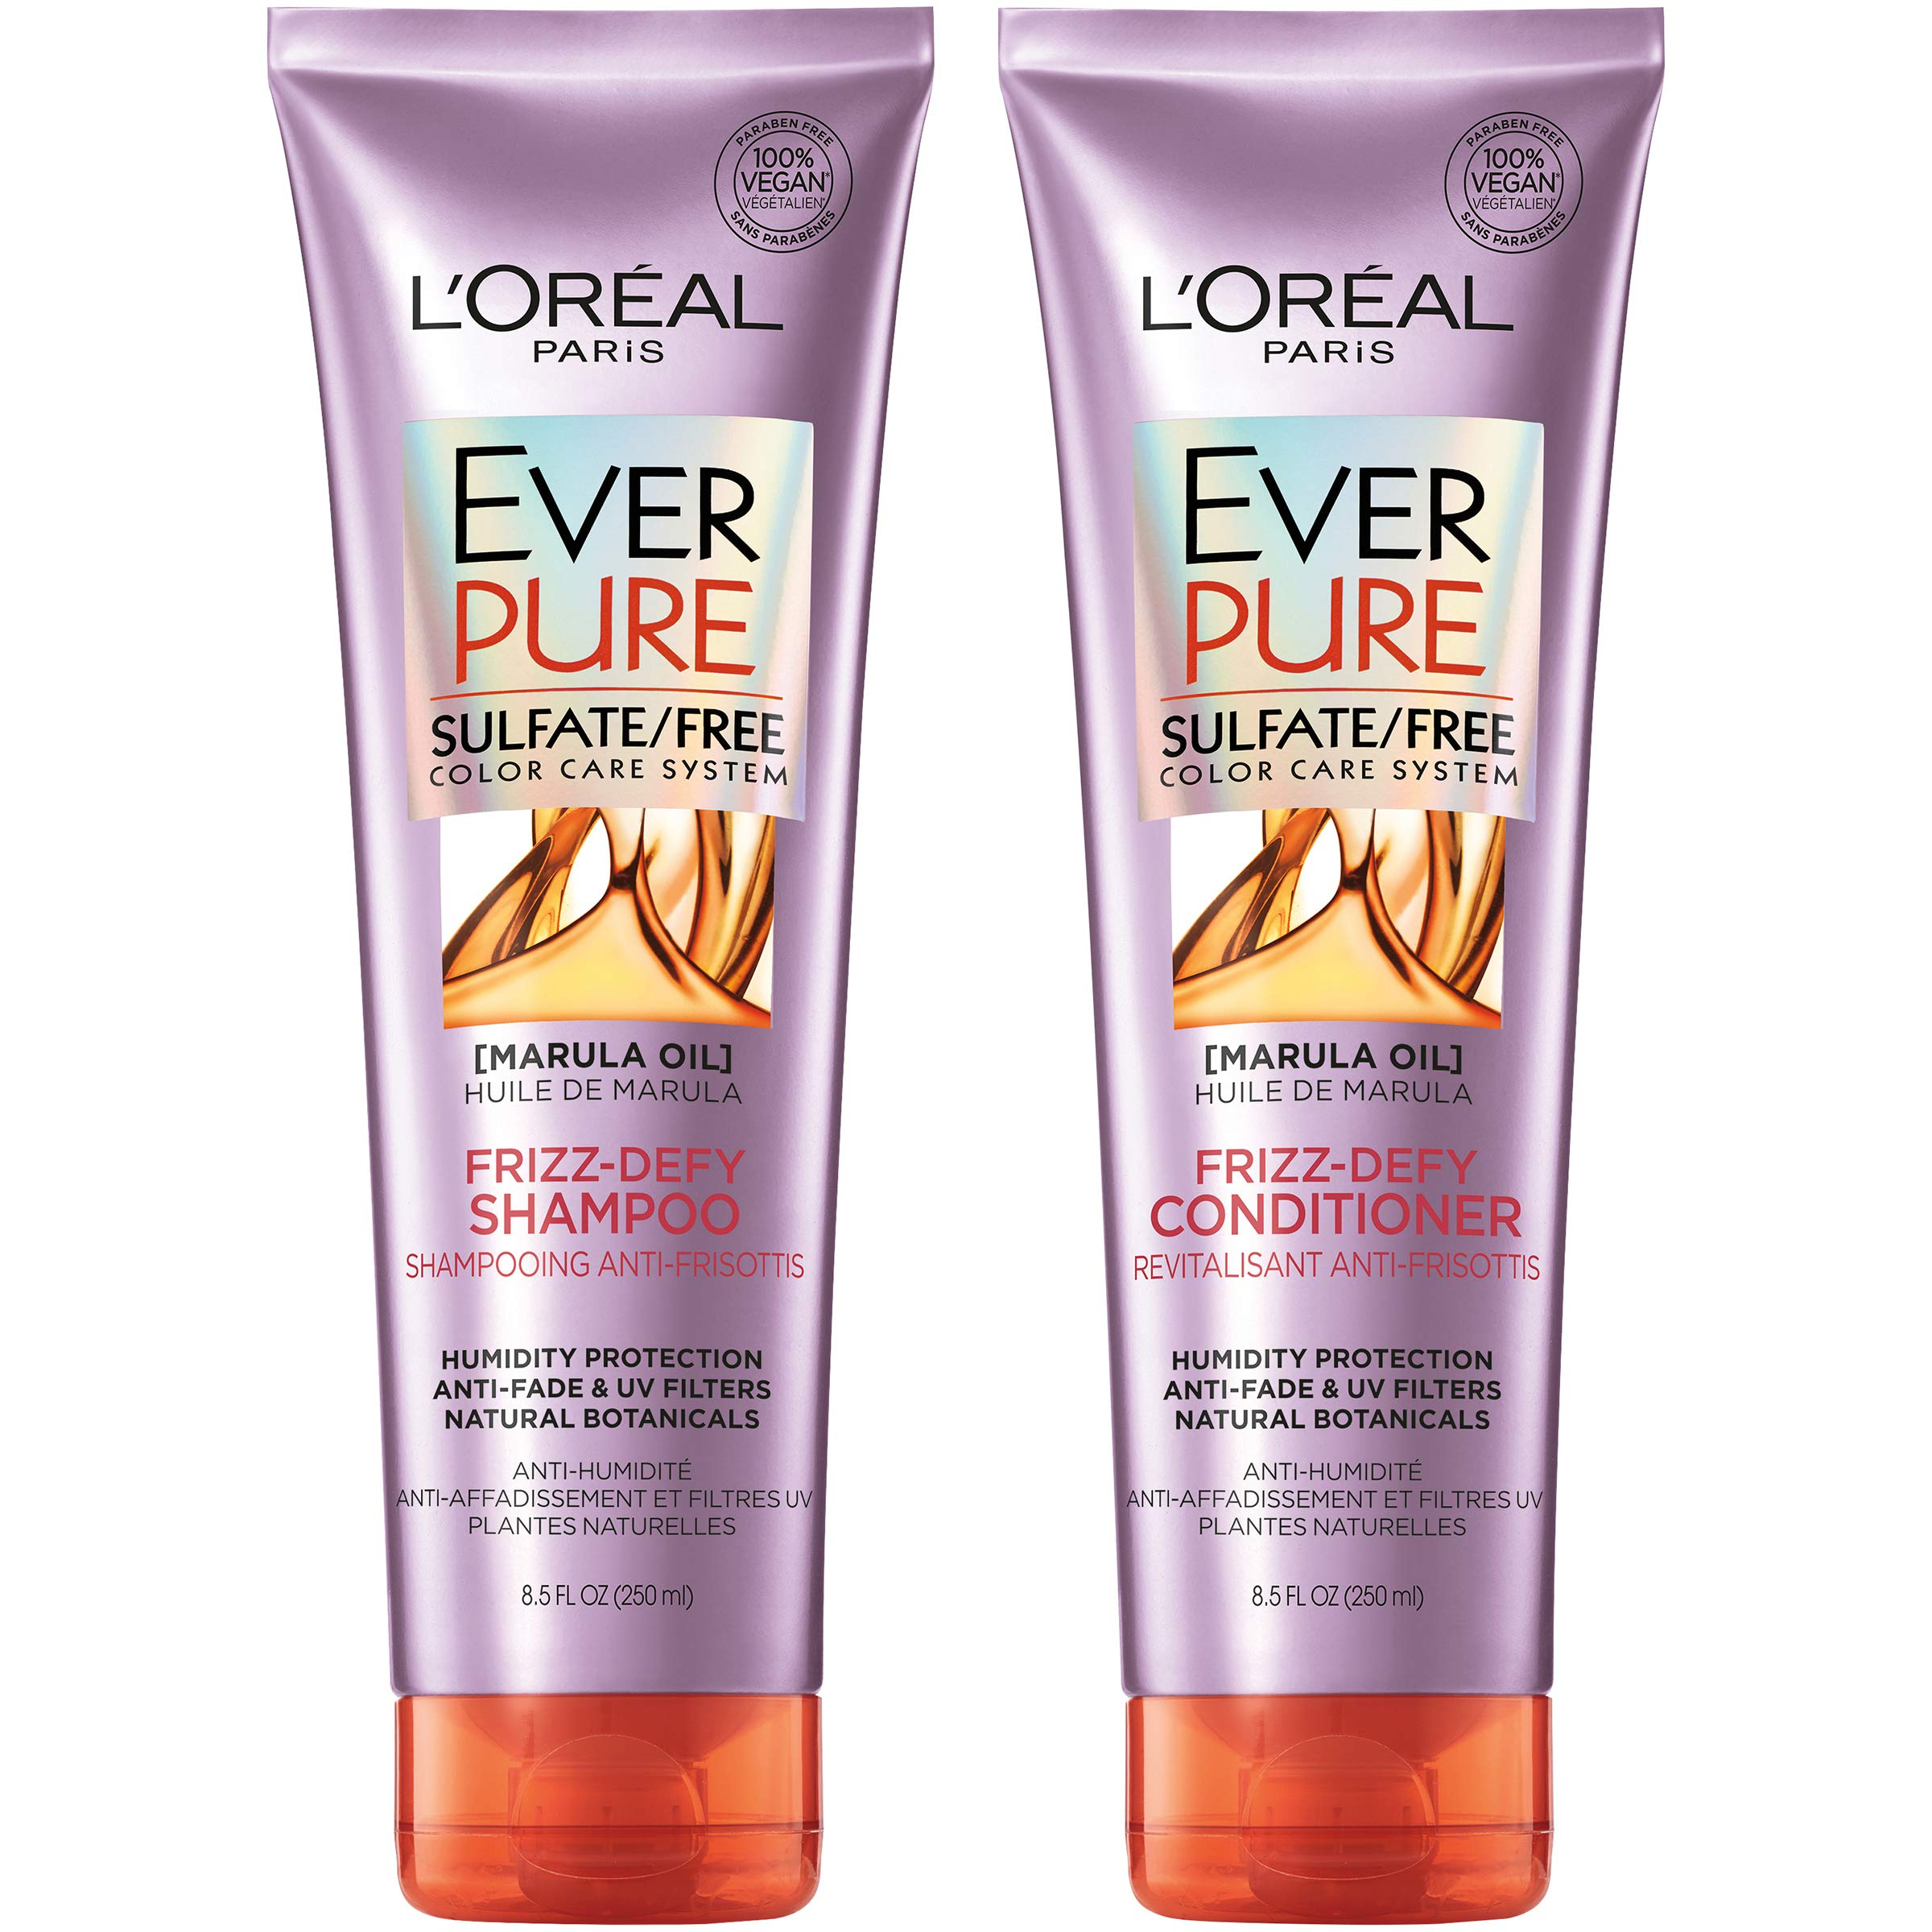 L'Oreal Paris Hair Care EverPure Frizz Defy Sulfate Free Shampoo & Conditioner Kit for Color-Treated Hair, Humidity + Frizz Control, For Frizzy Hair, (8.5 fl. oz. each) by L'Oreal Paris